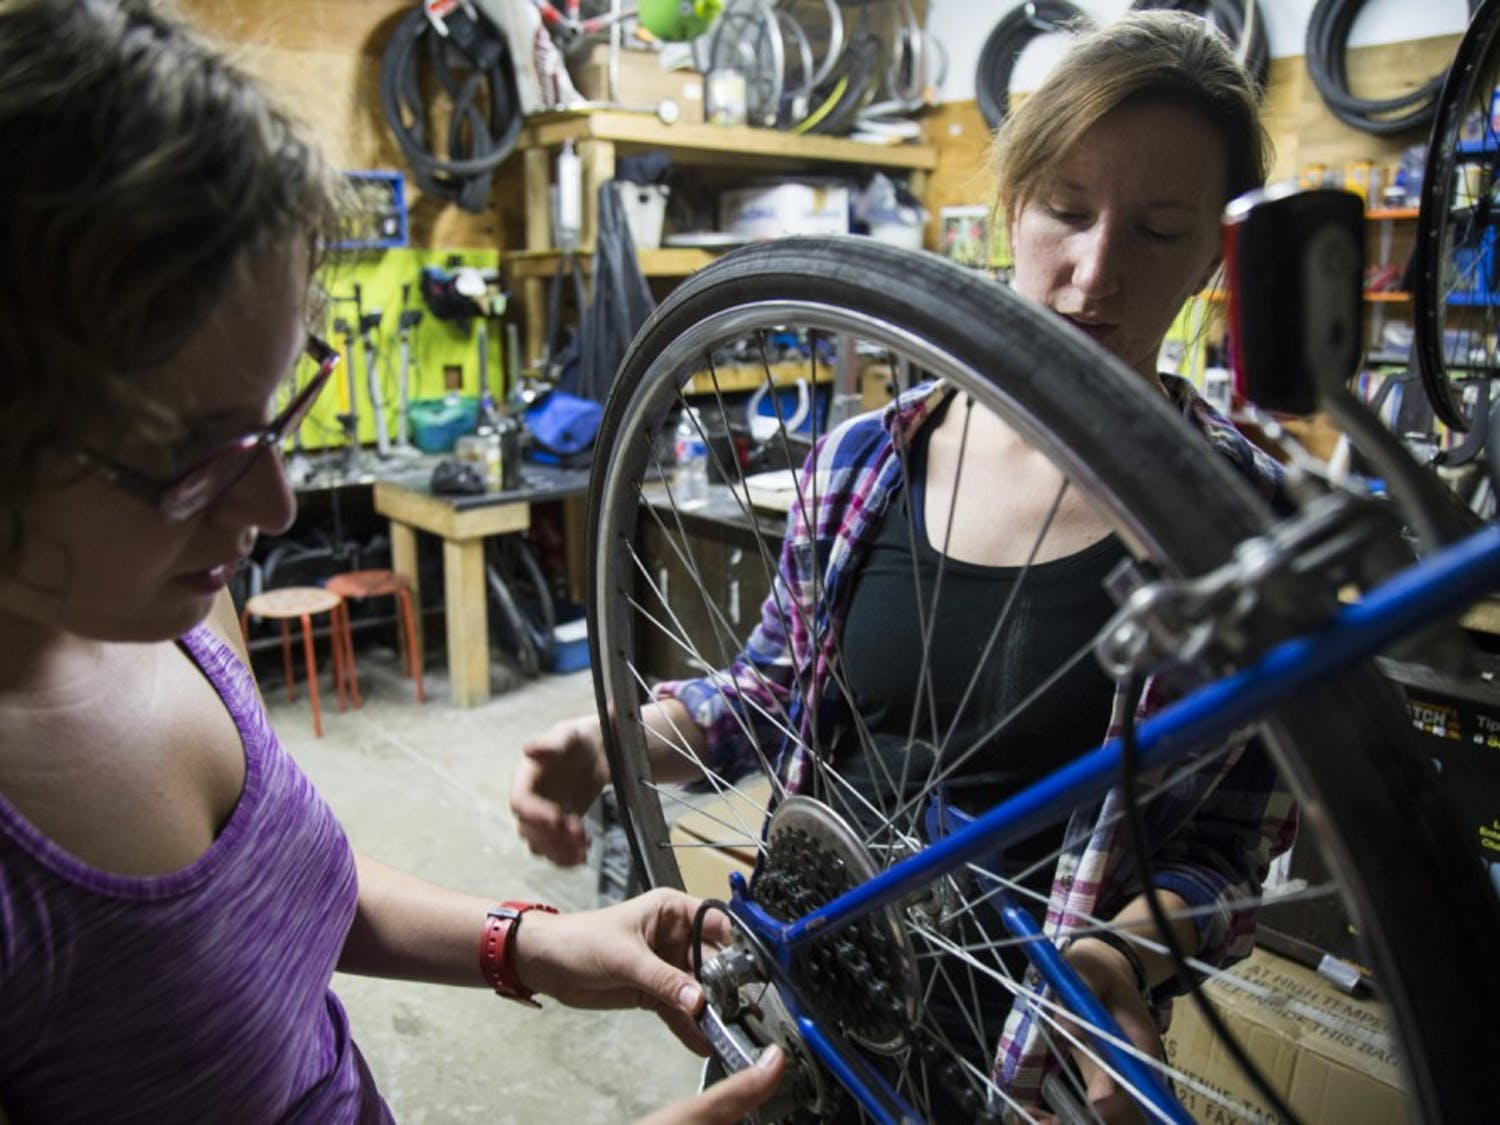 Victoria Petermann (right) helps Maia Call make adjustments on her bike, which she bought six years ago on Craiglist.